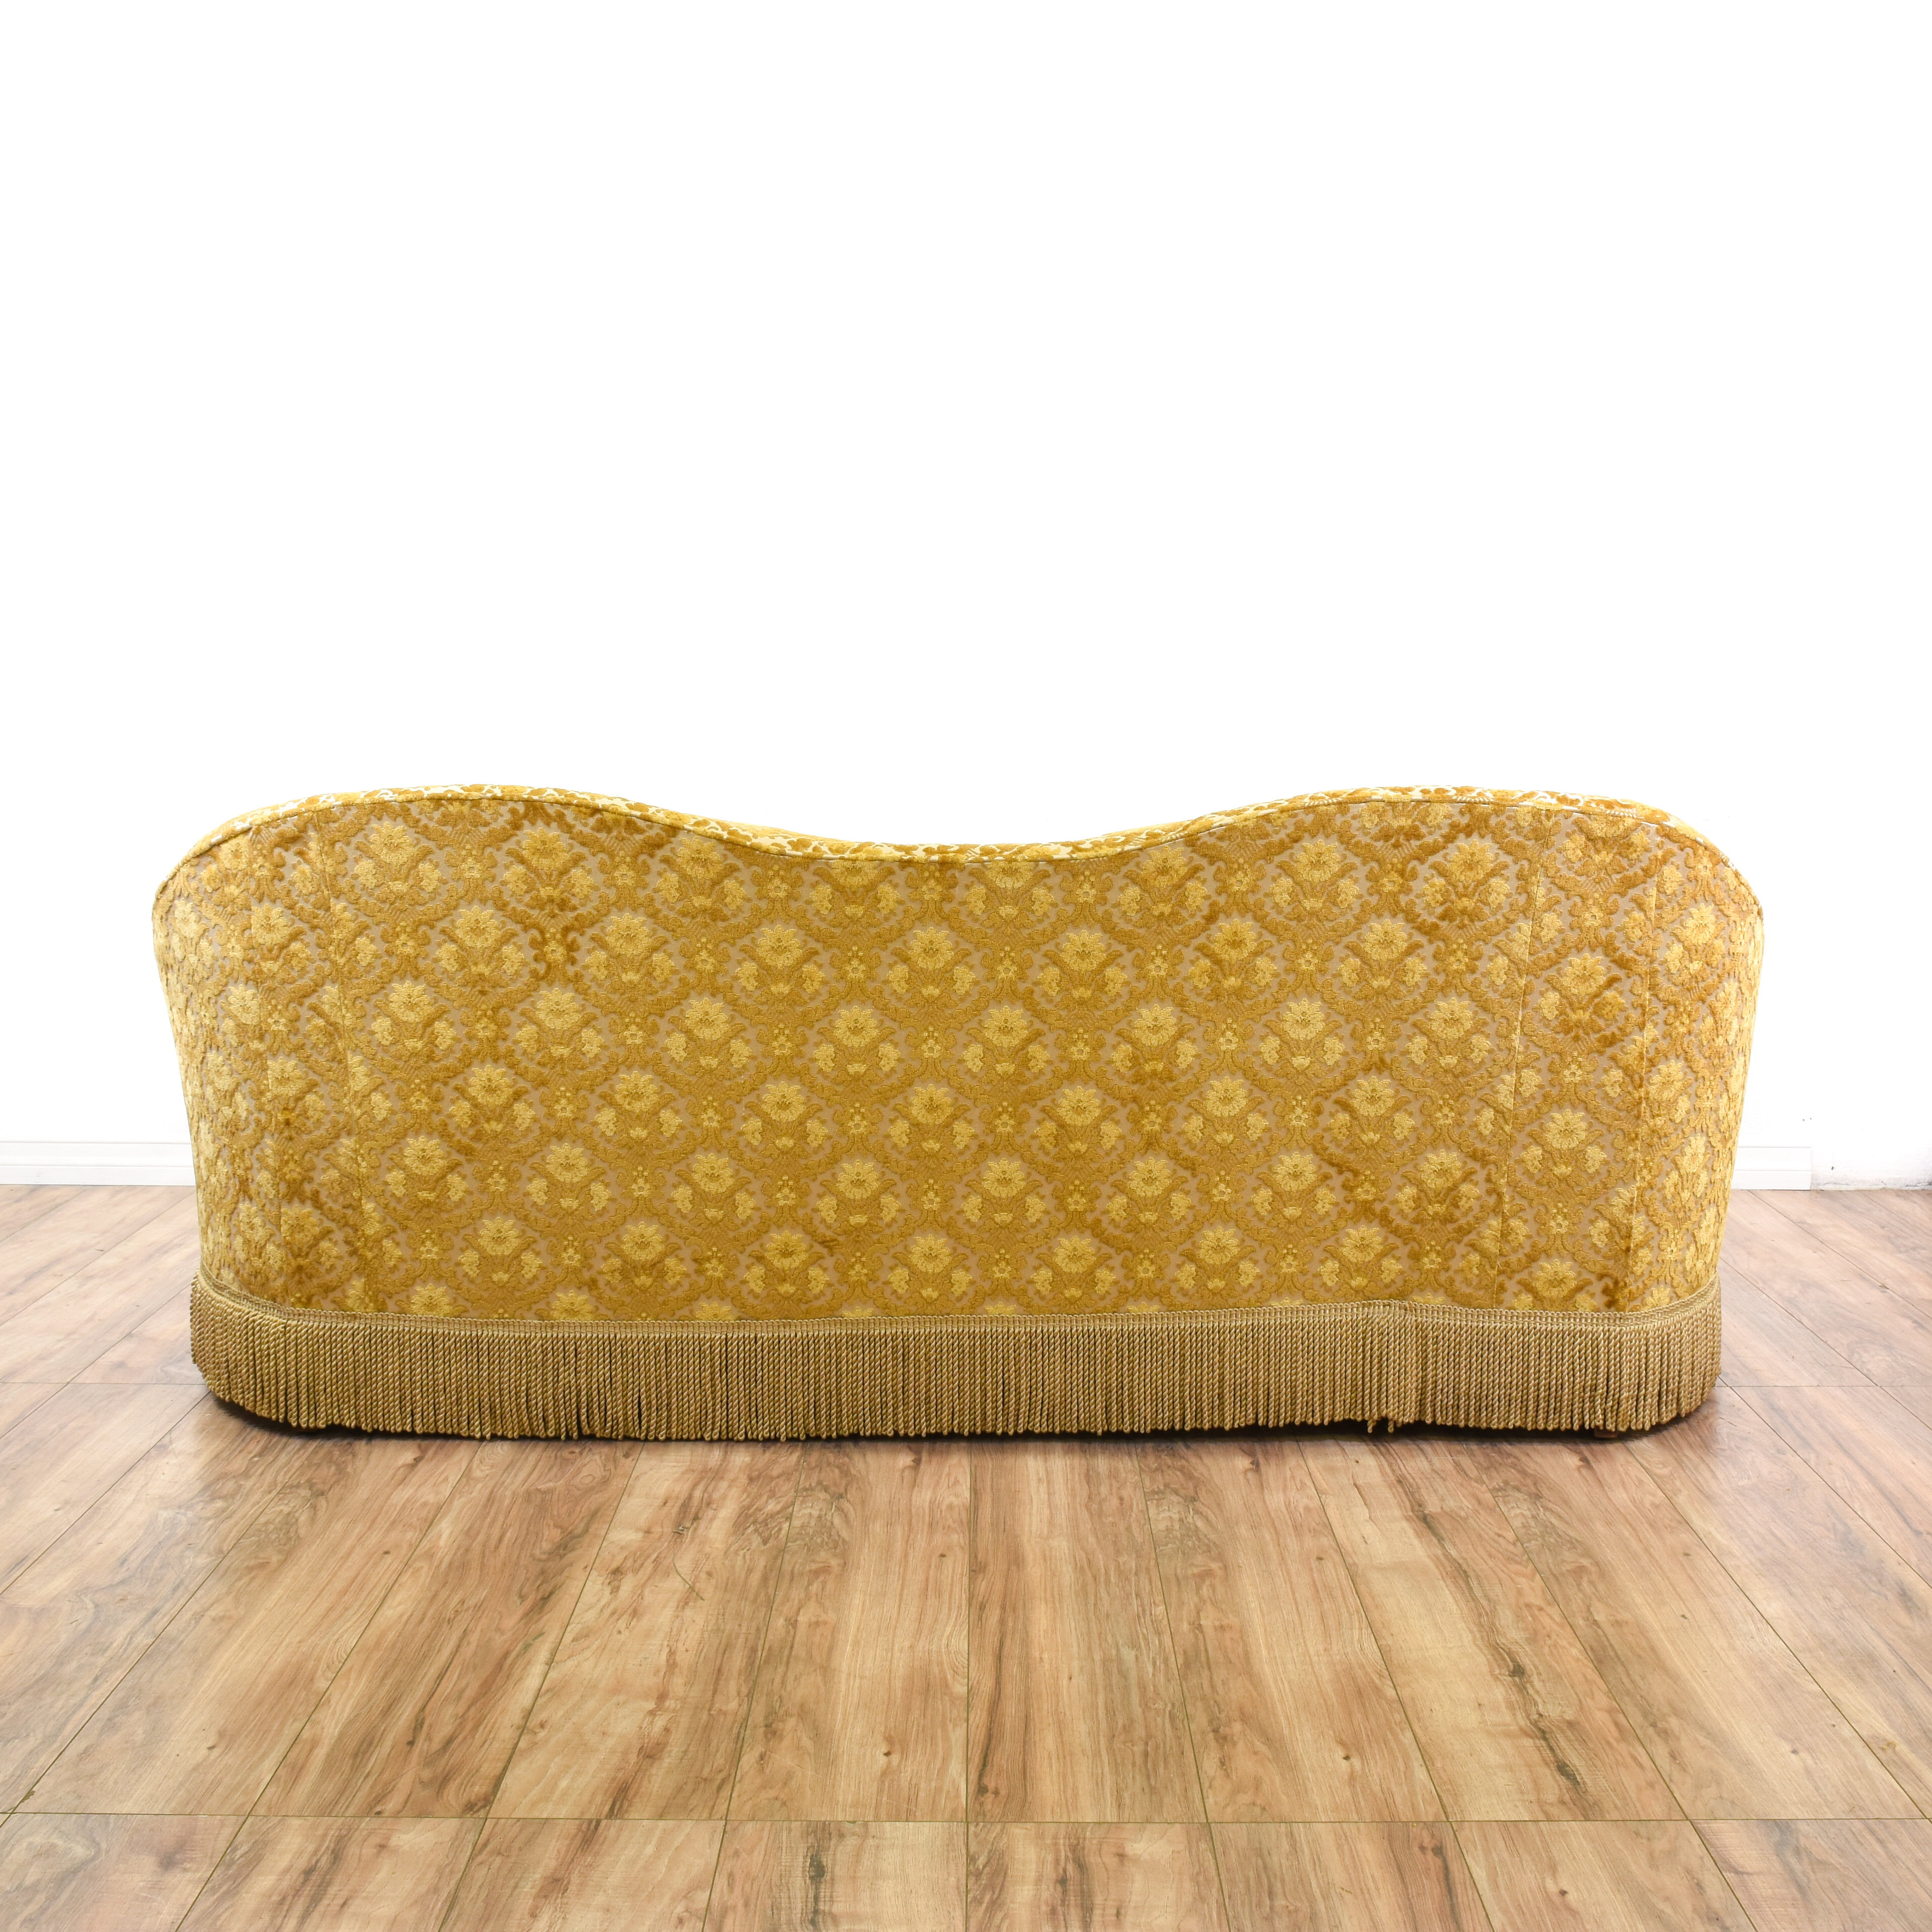 hollywood regency curved sofa how to get biro ink off leather brocade chenille loveseat vintage